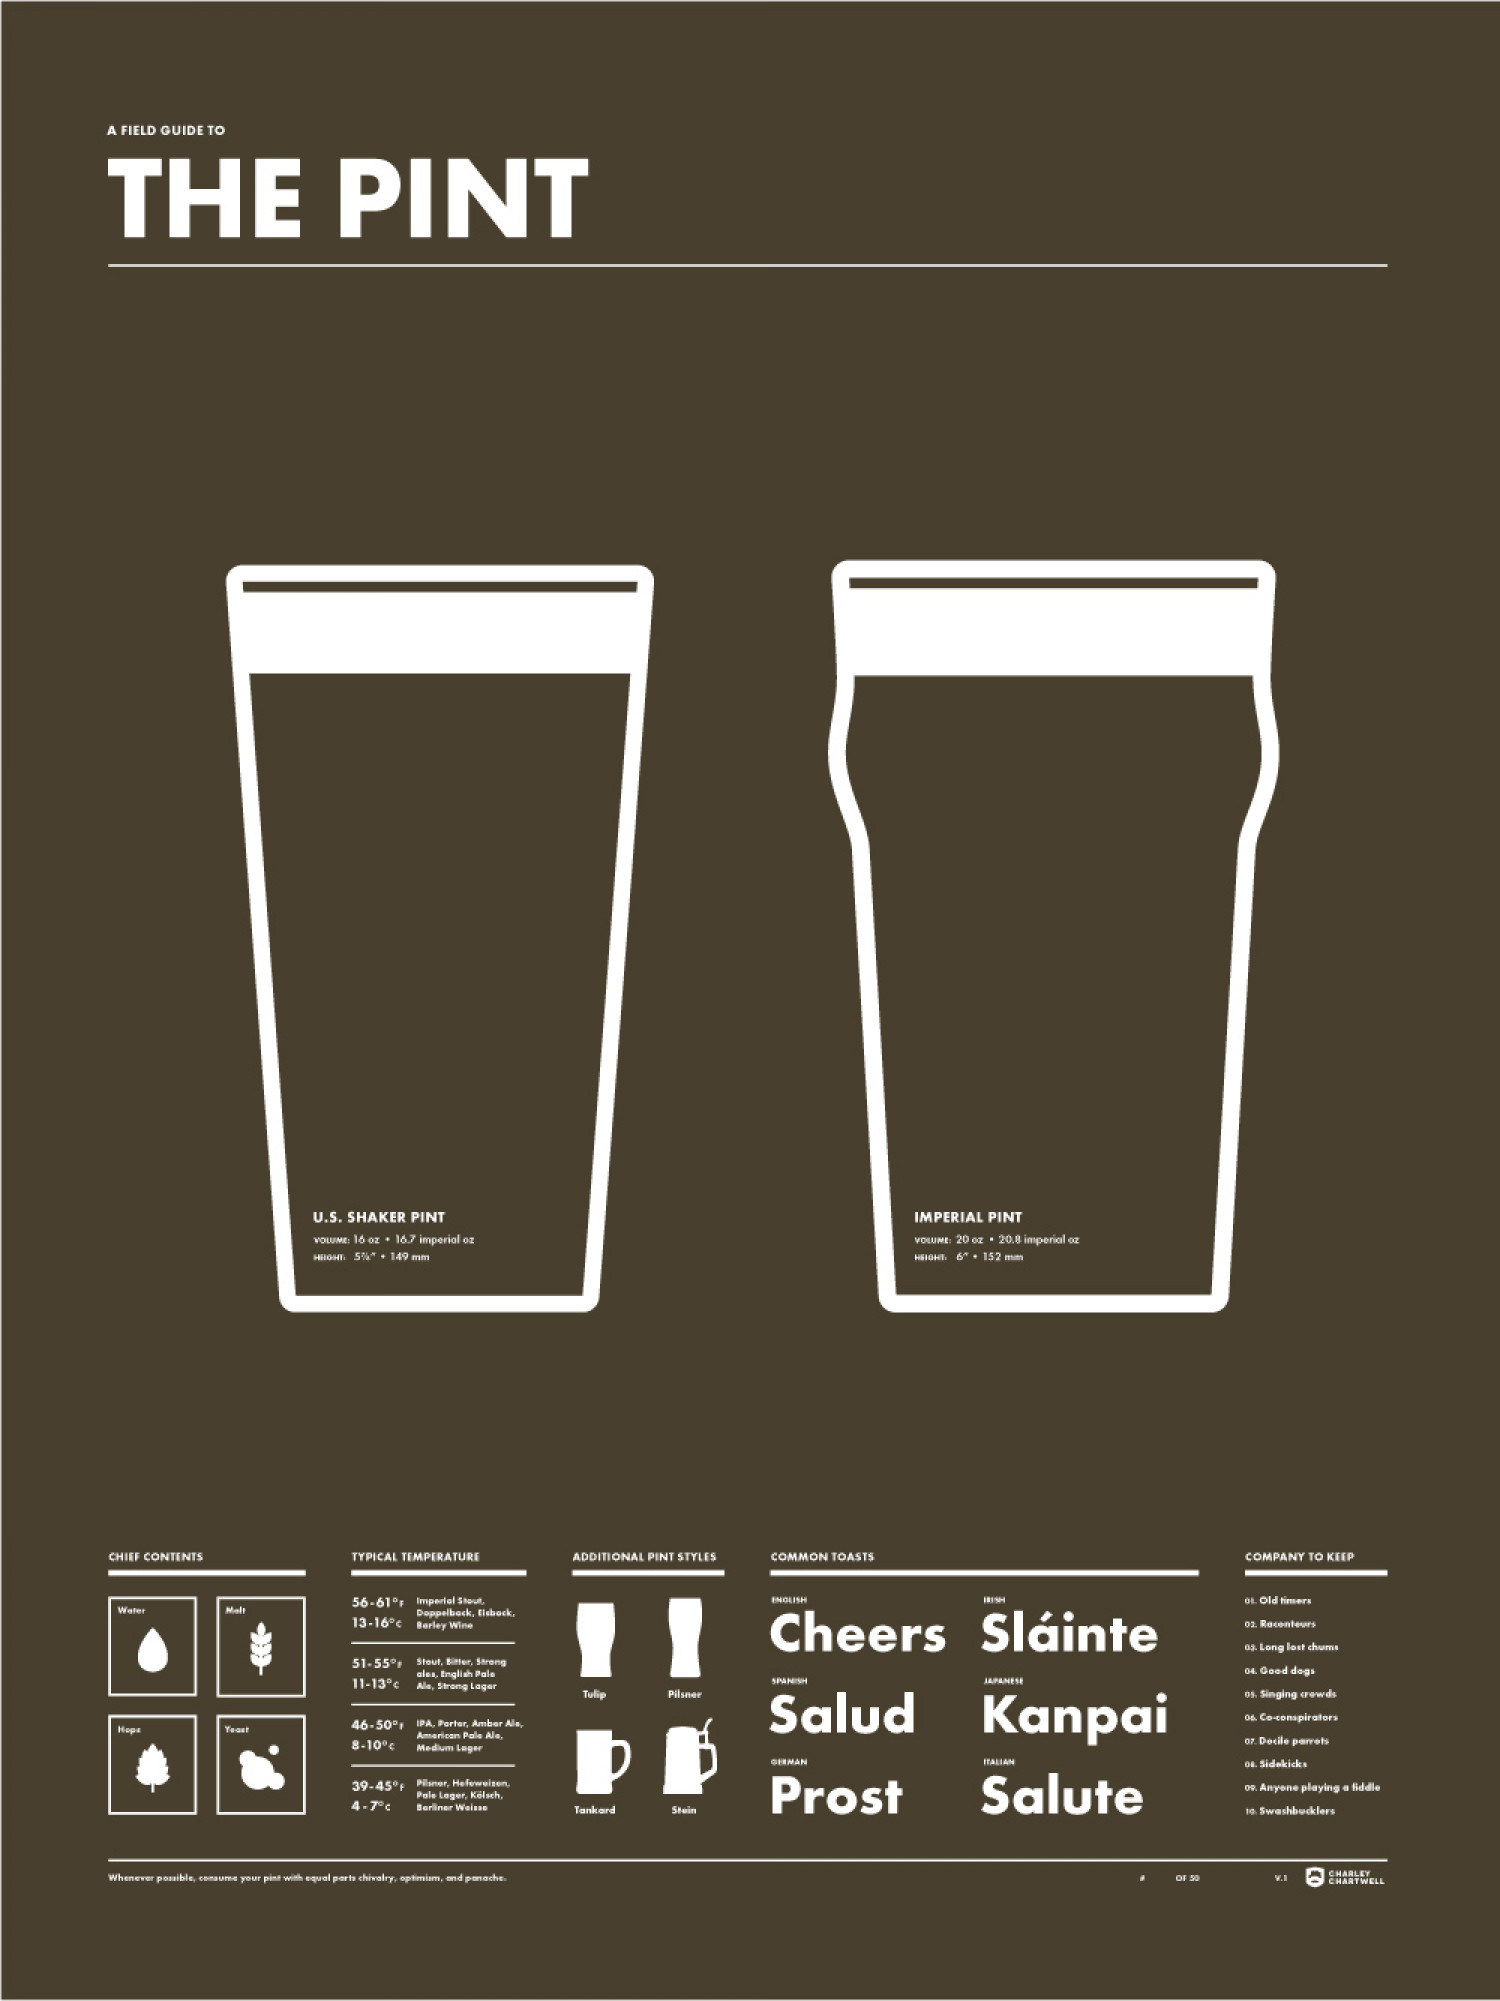 The Pint poster | Visual.ly